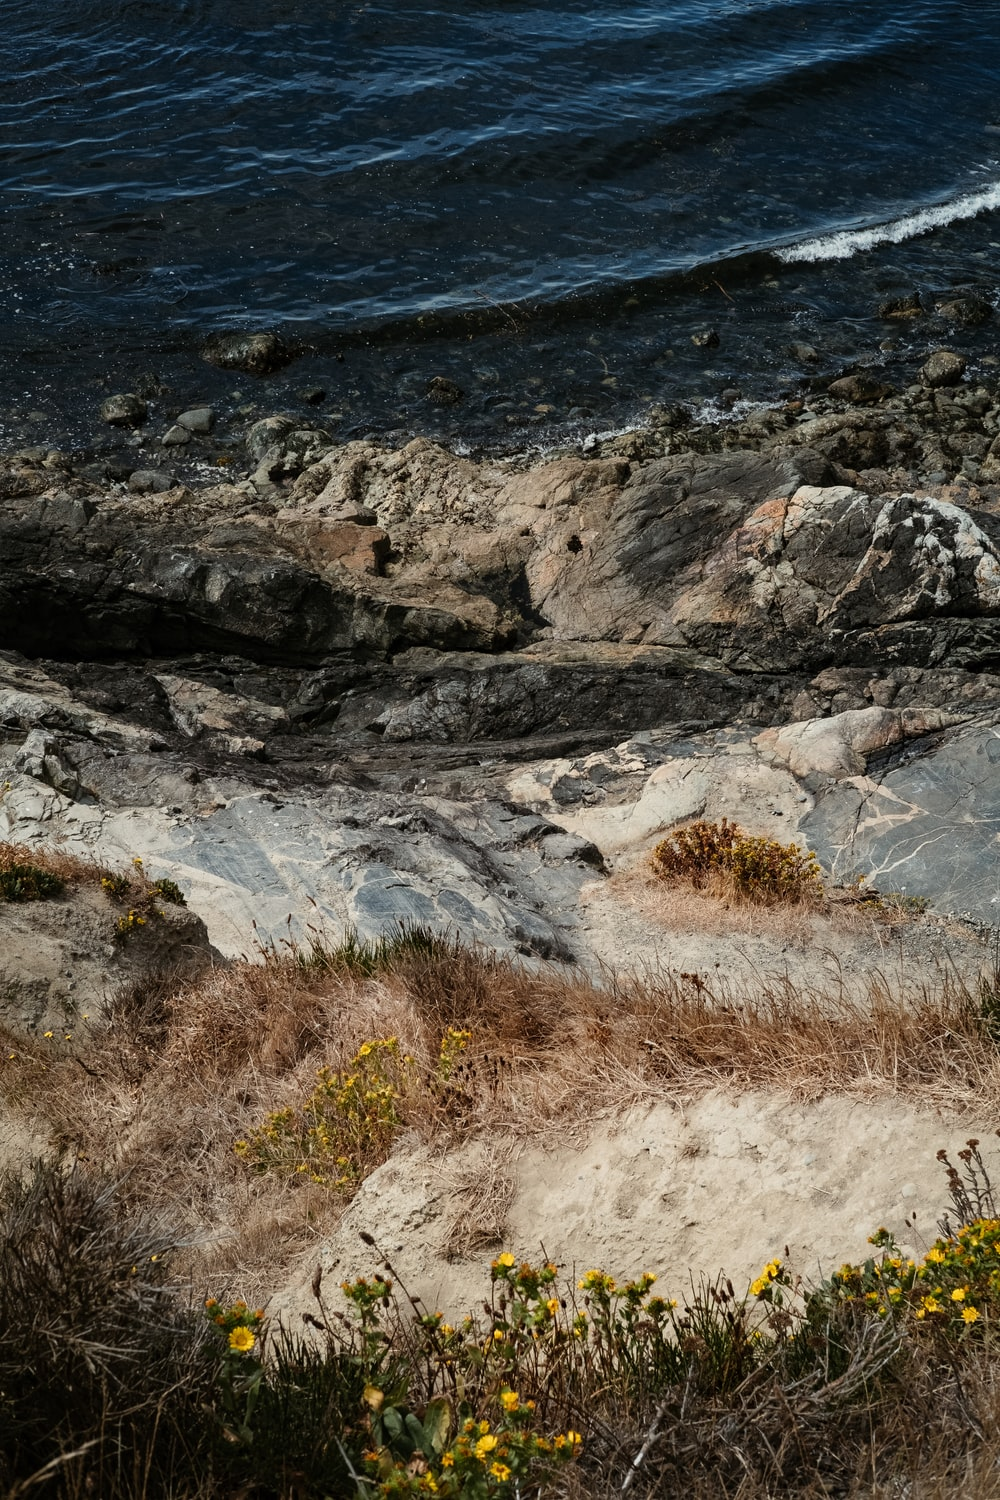 brown grass on rocky shore during daytime